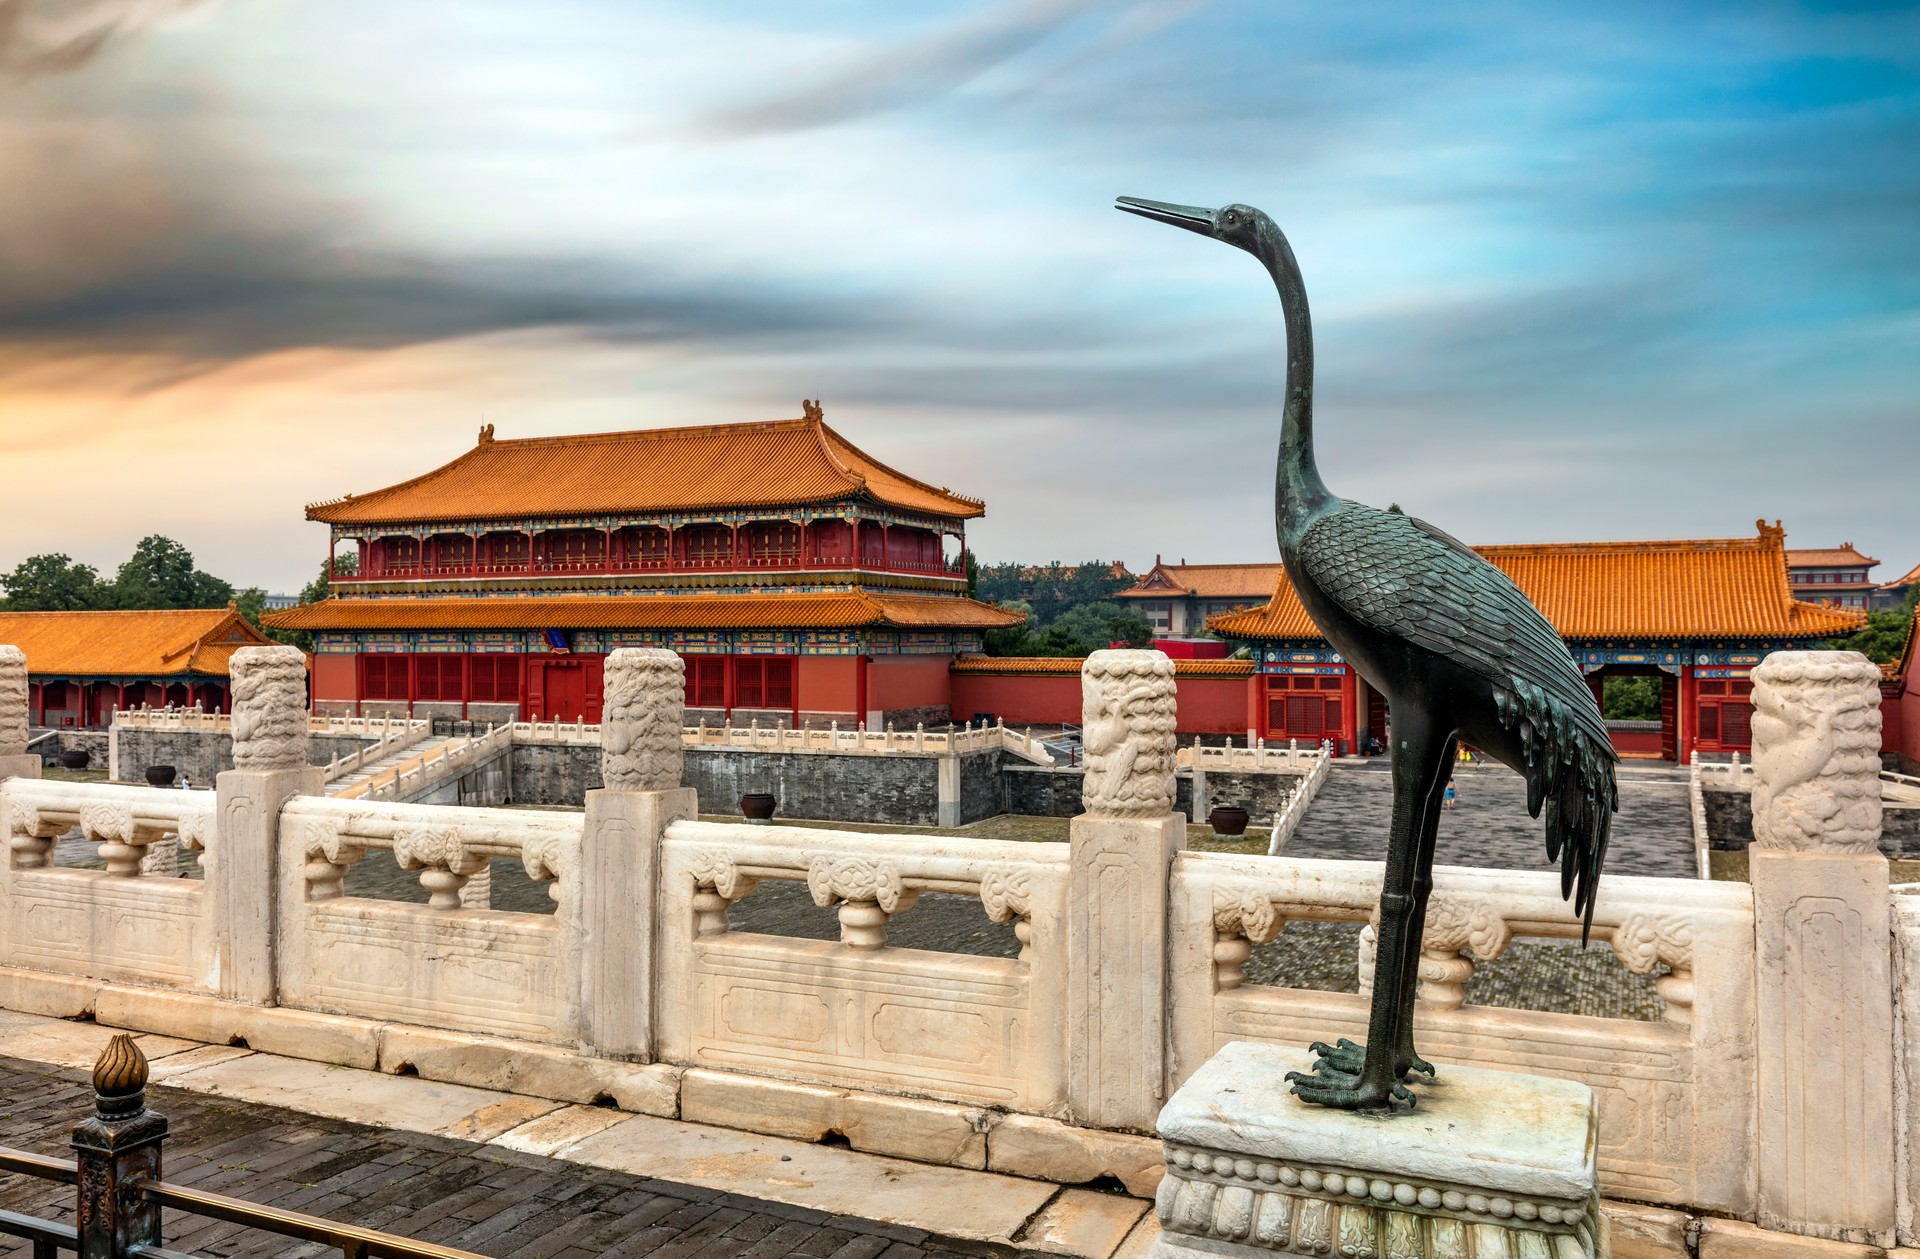 Beijing's Forbidden City in China